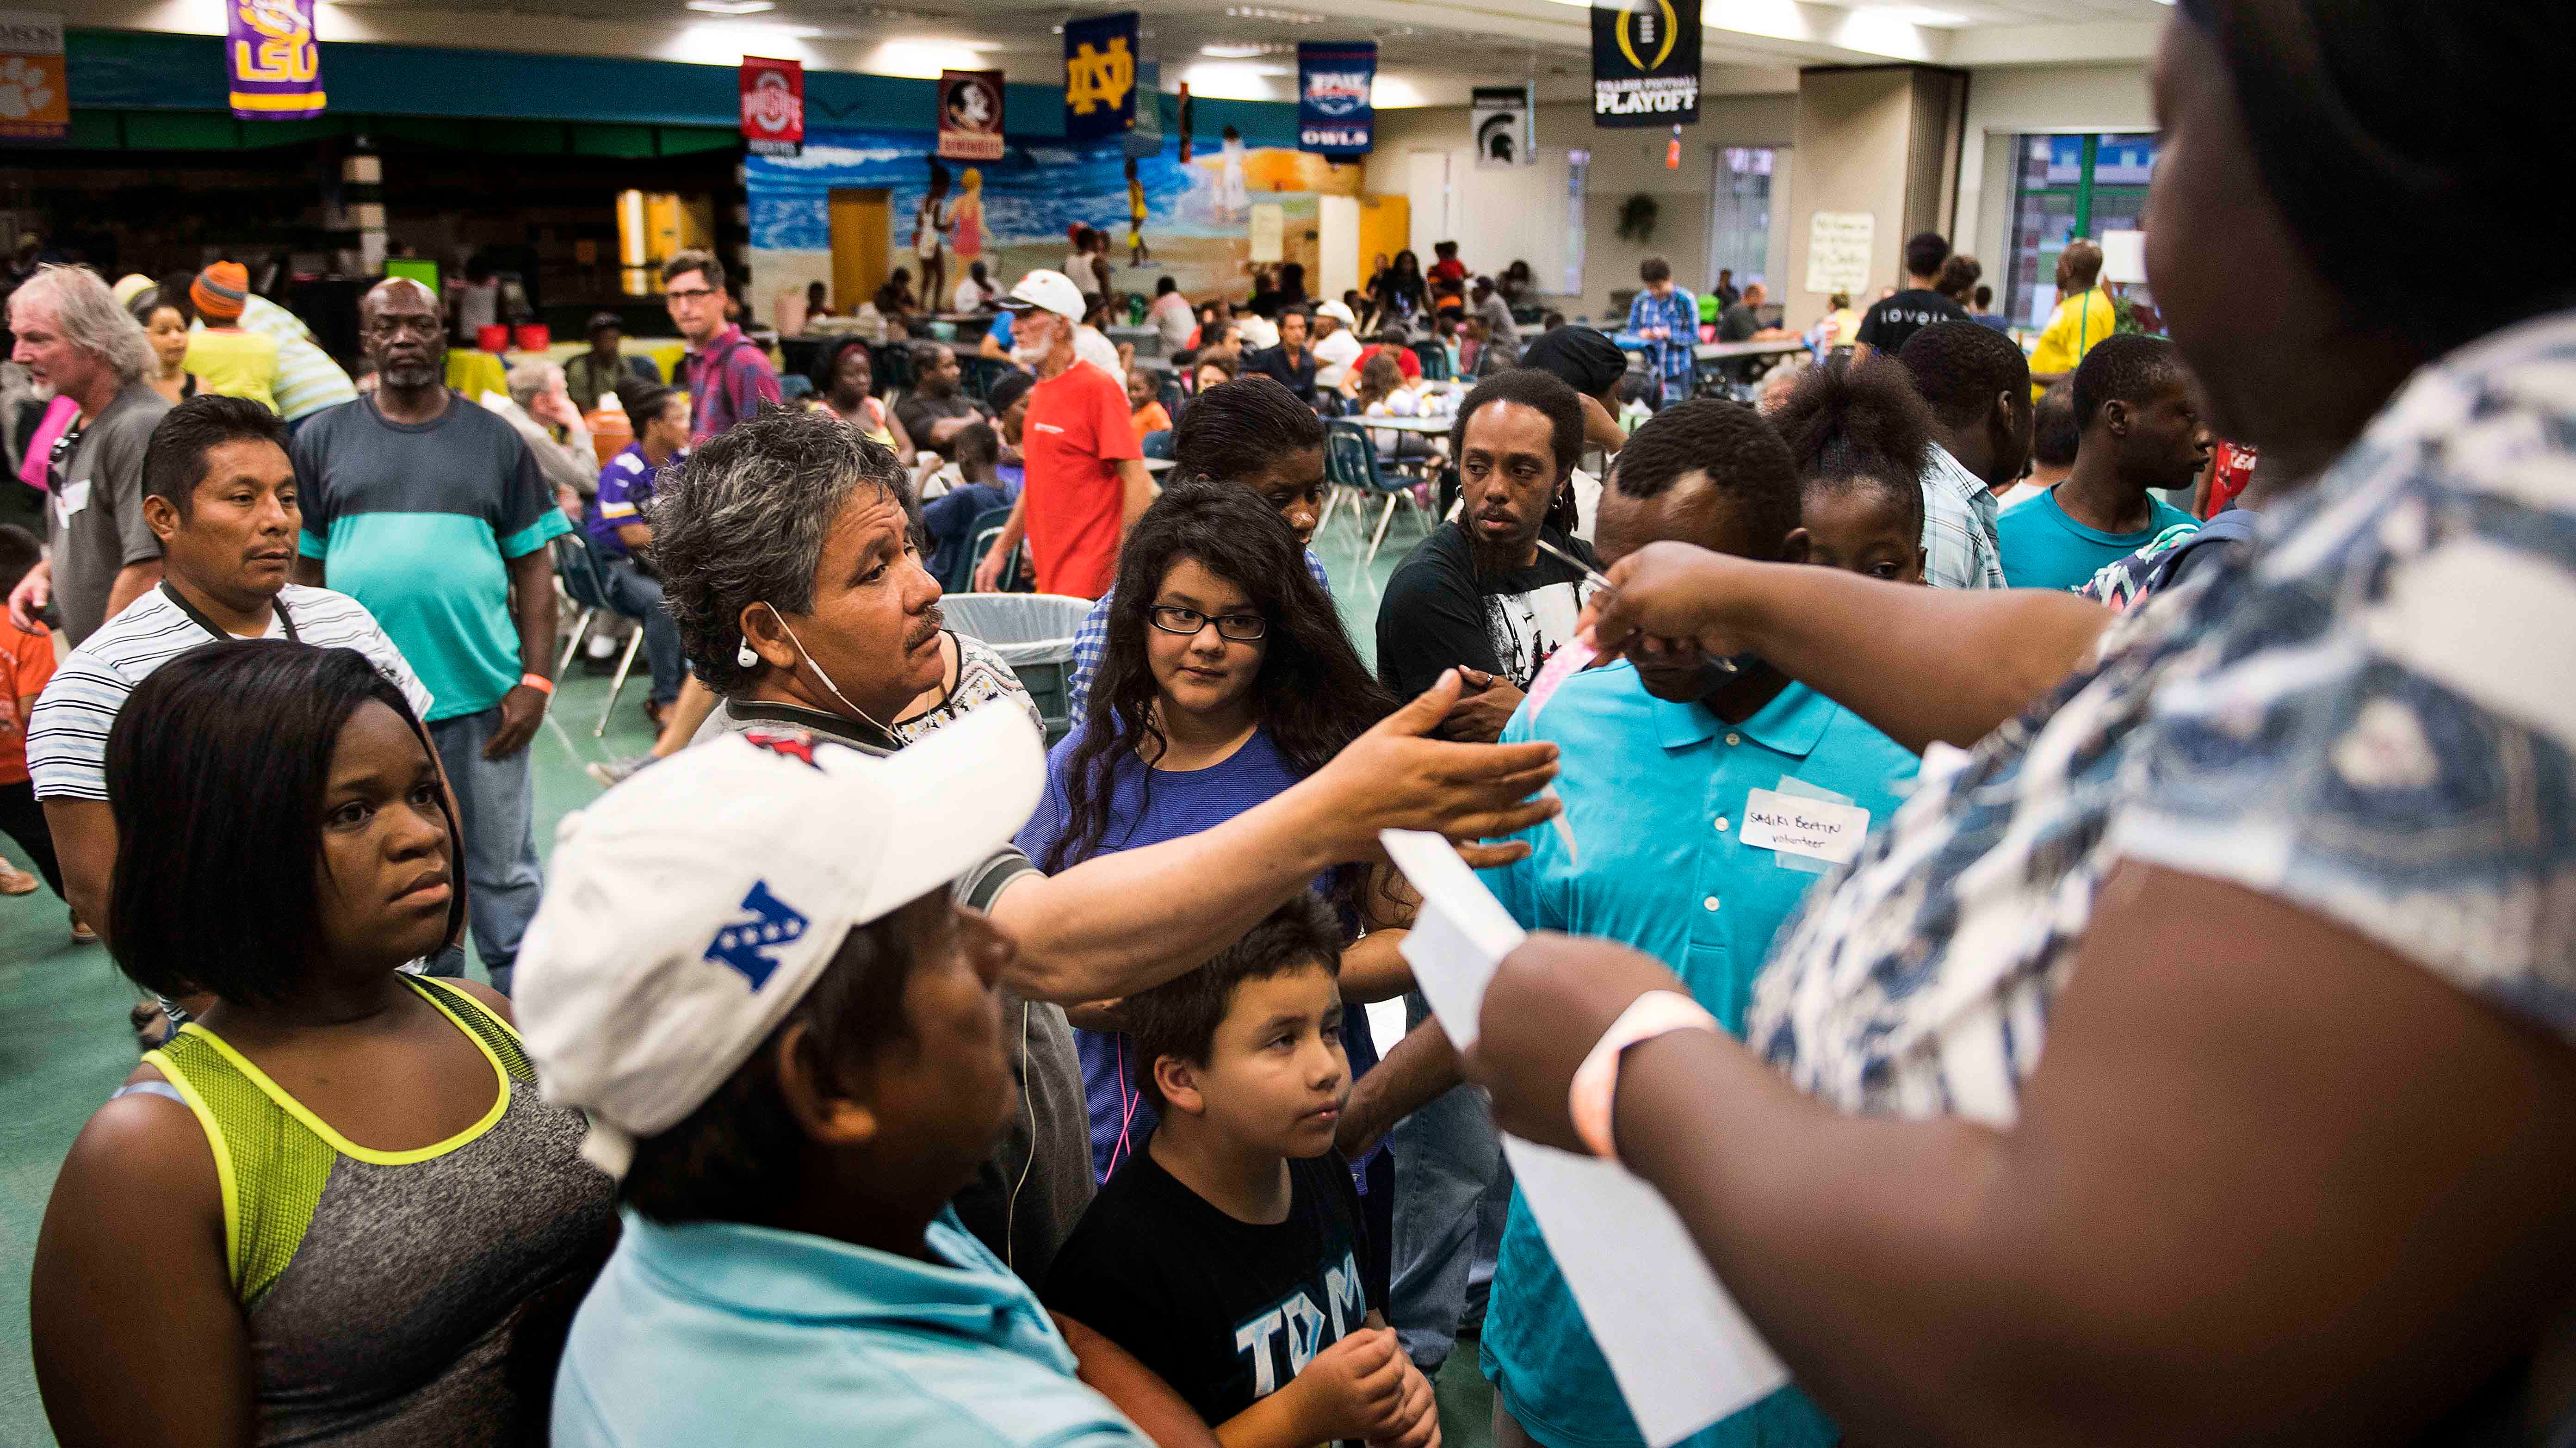 In the Era of Coronavirus and Social Distancing, Should You Go to a Hurricane Shelter?